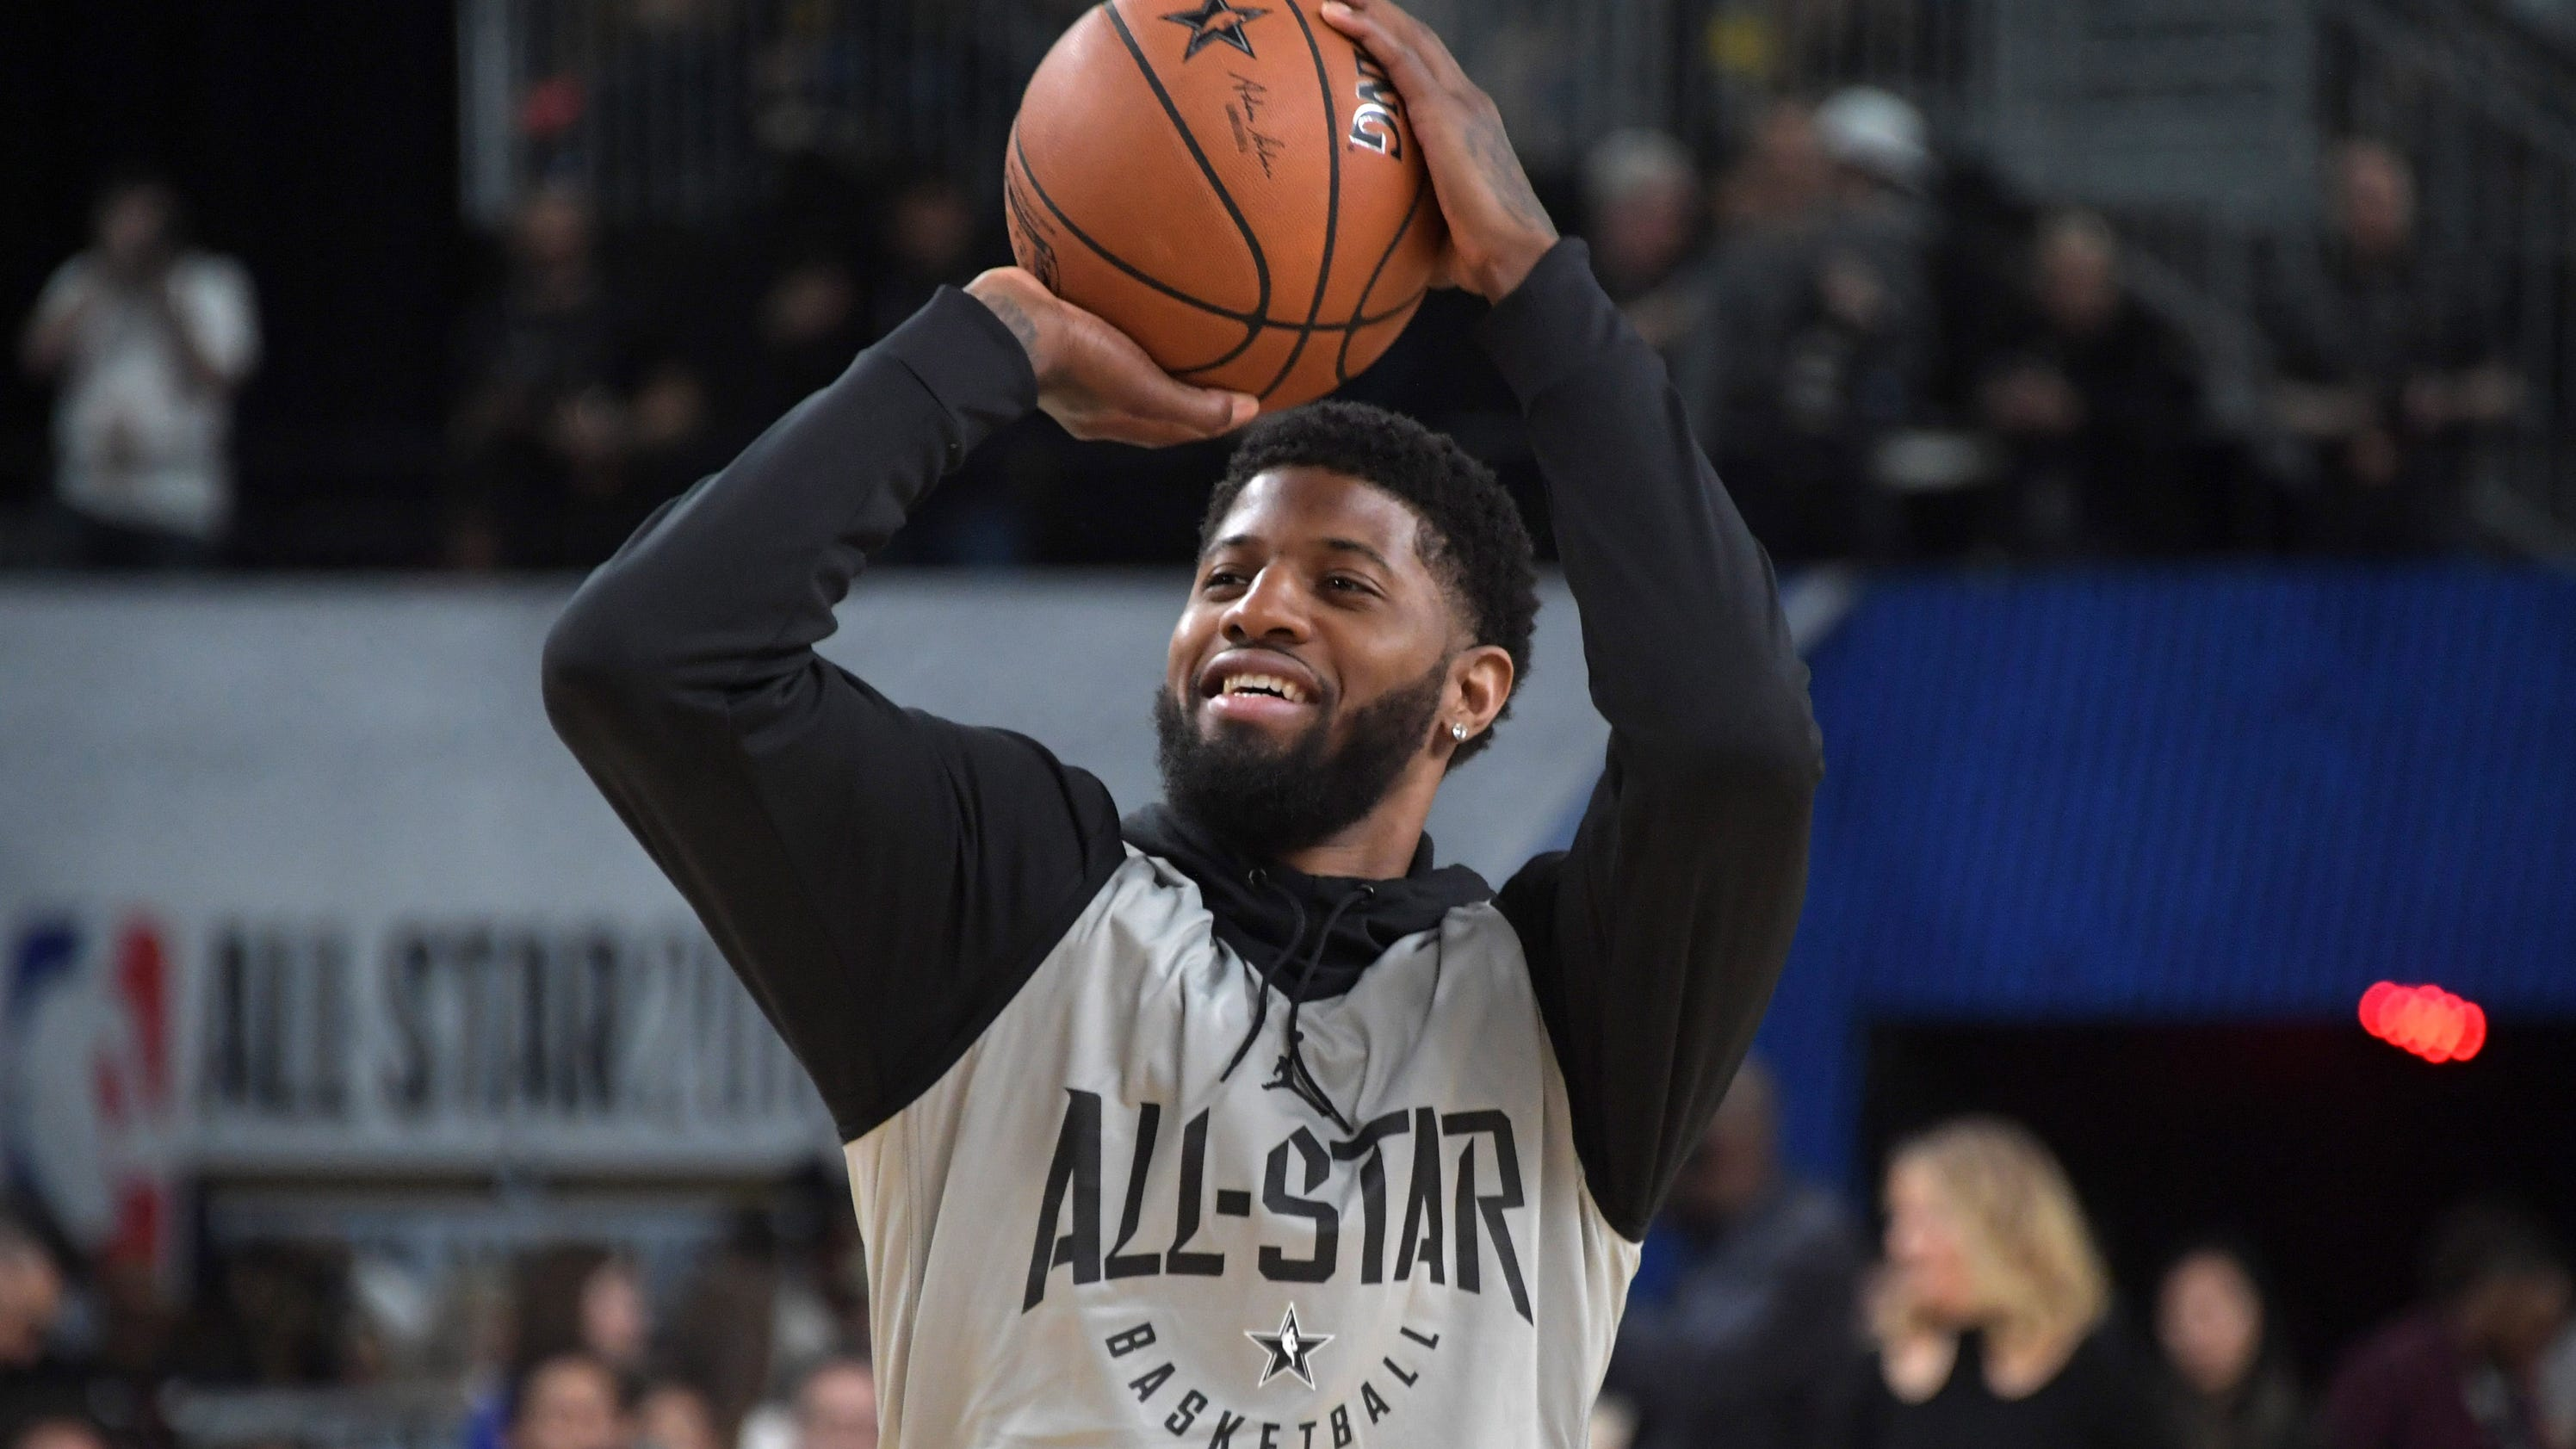 A__all_star_game-team_lebron_practice_97621696